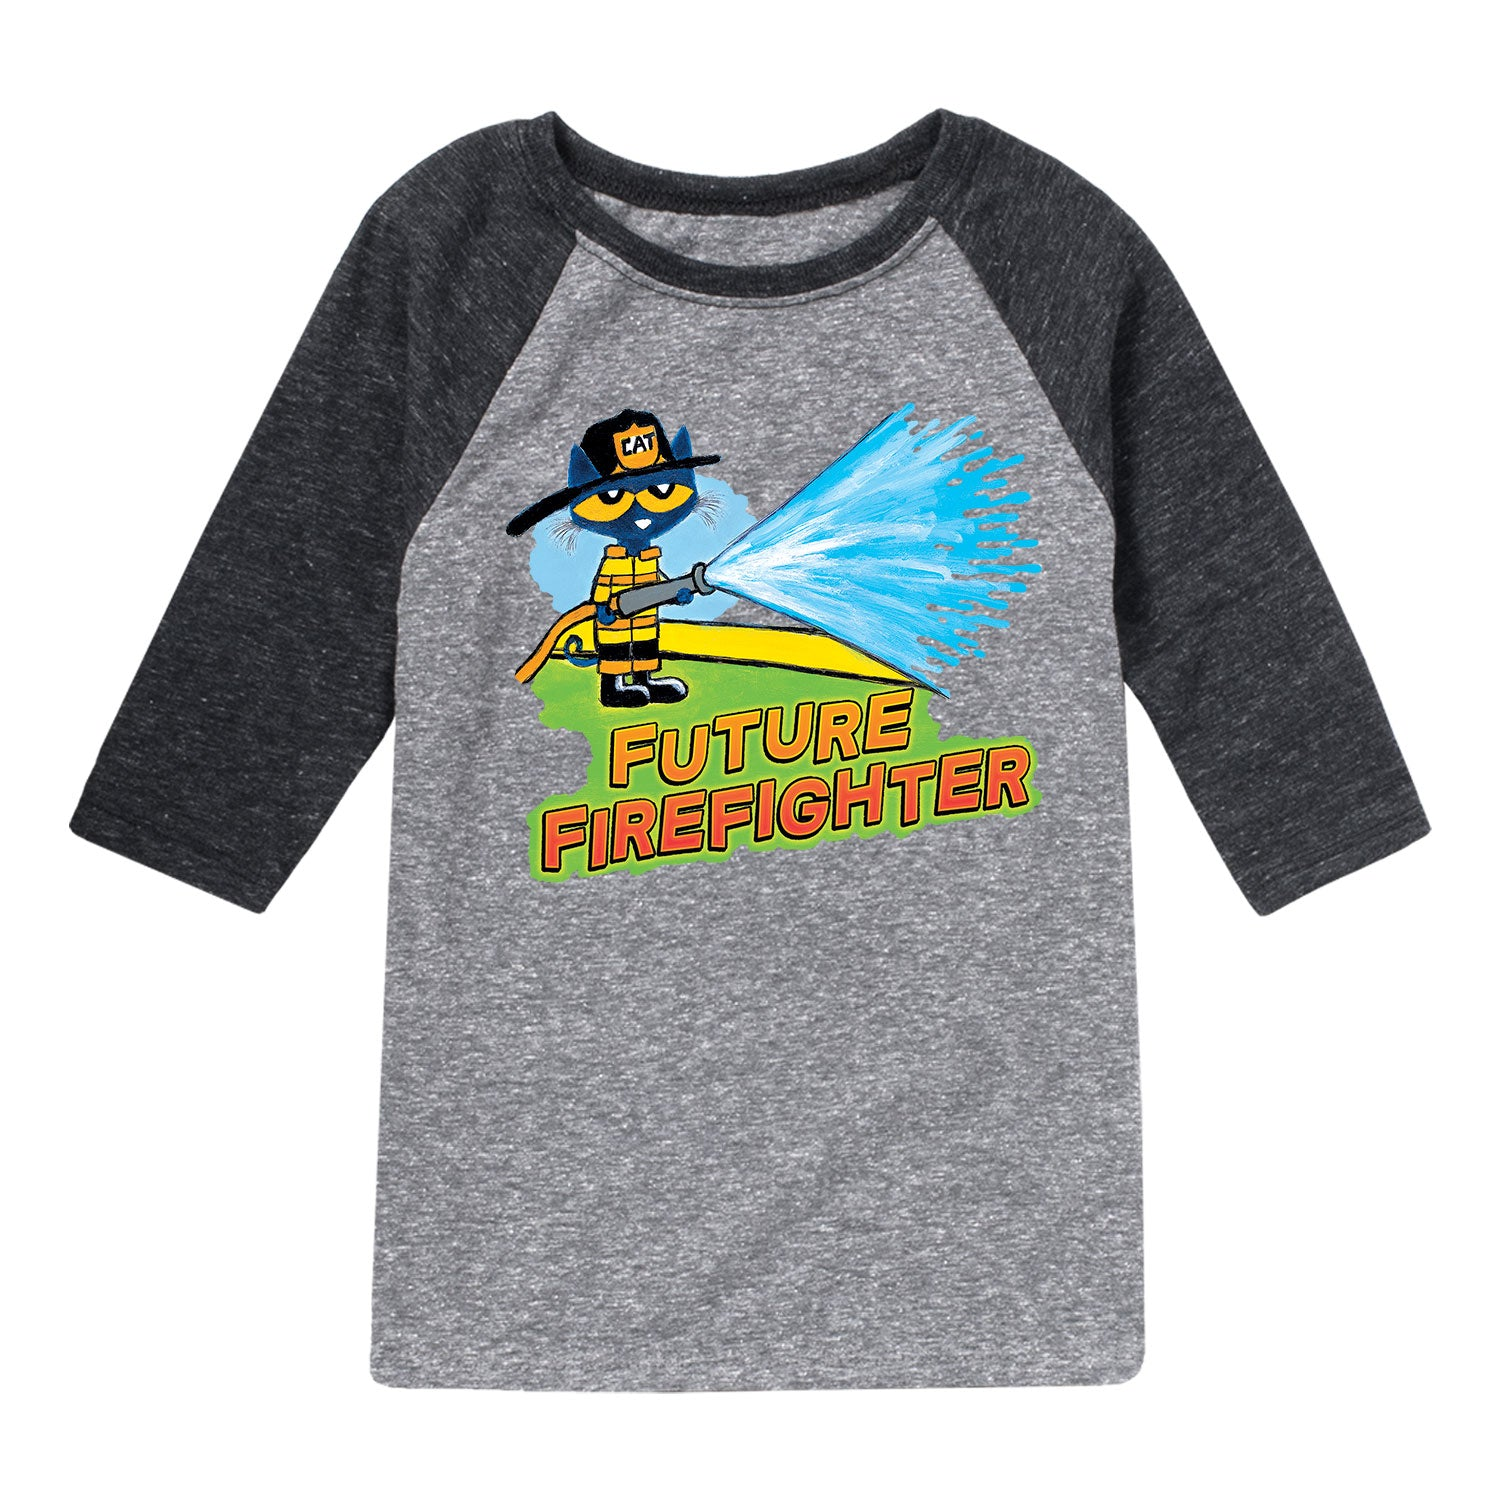 Pete The Cat Future Firefighter Kids - Toddler Raglan